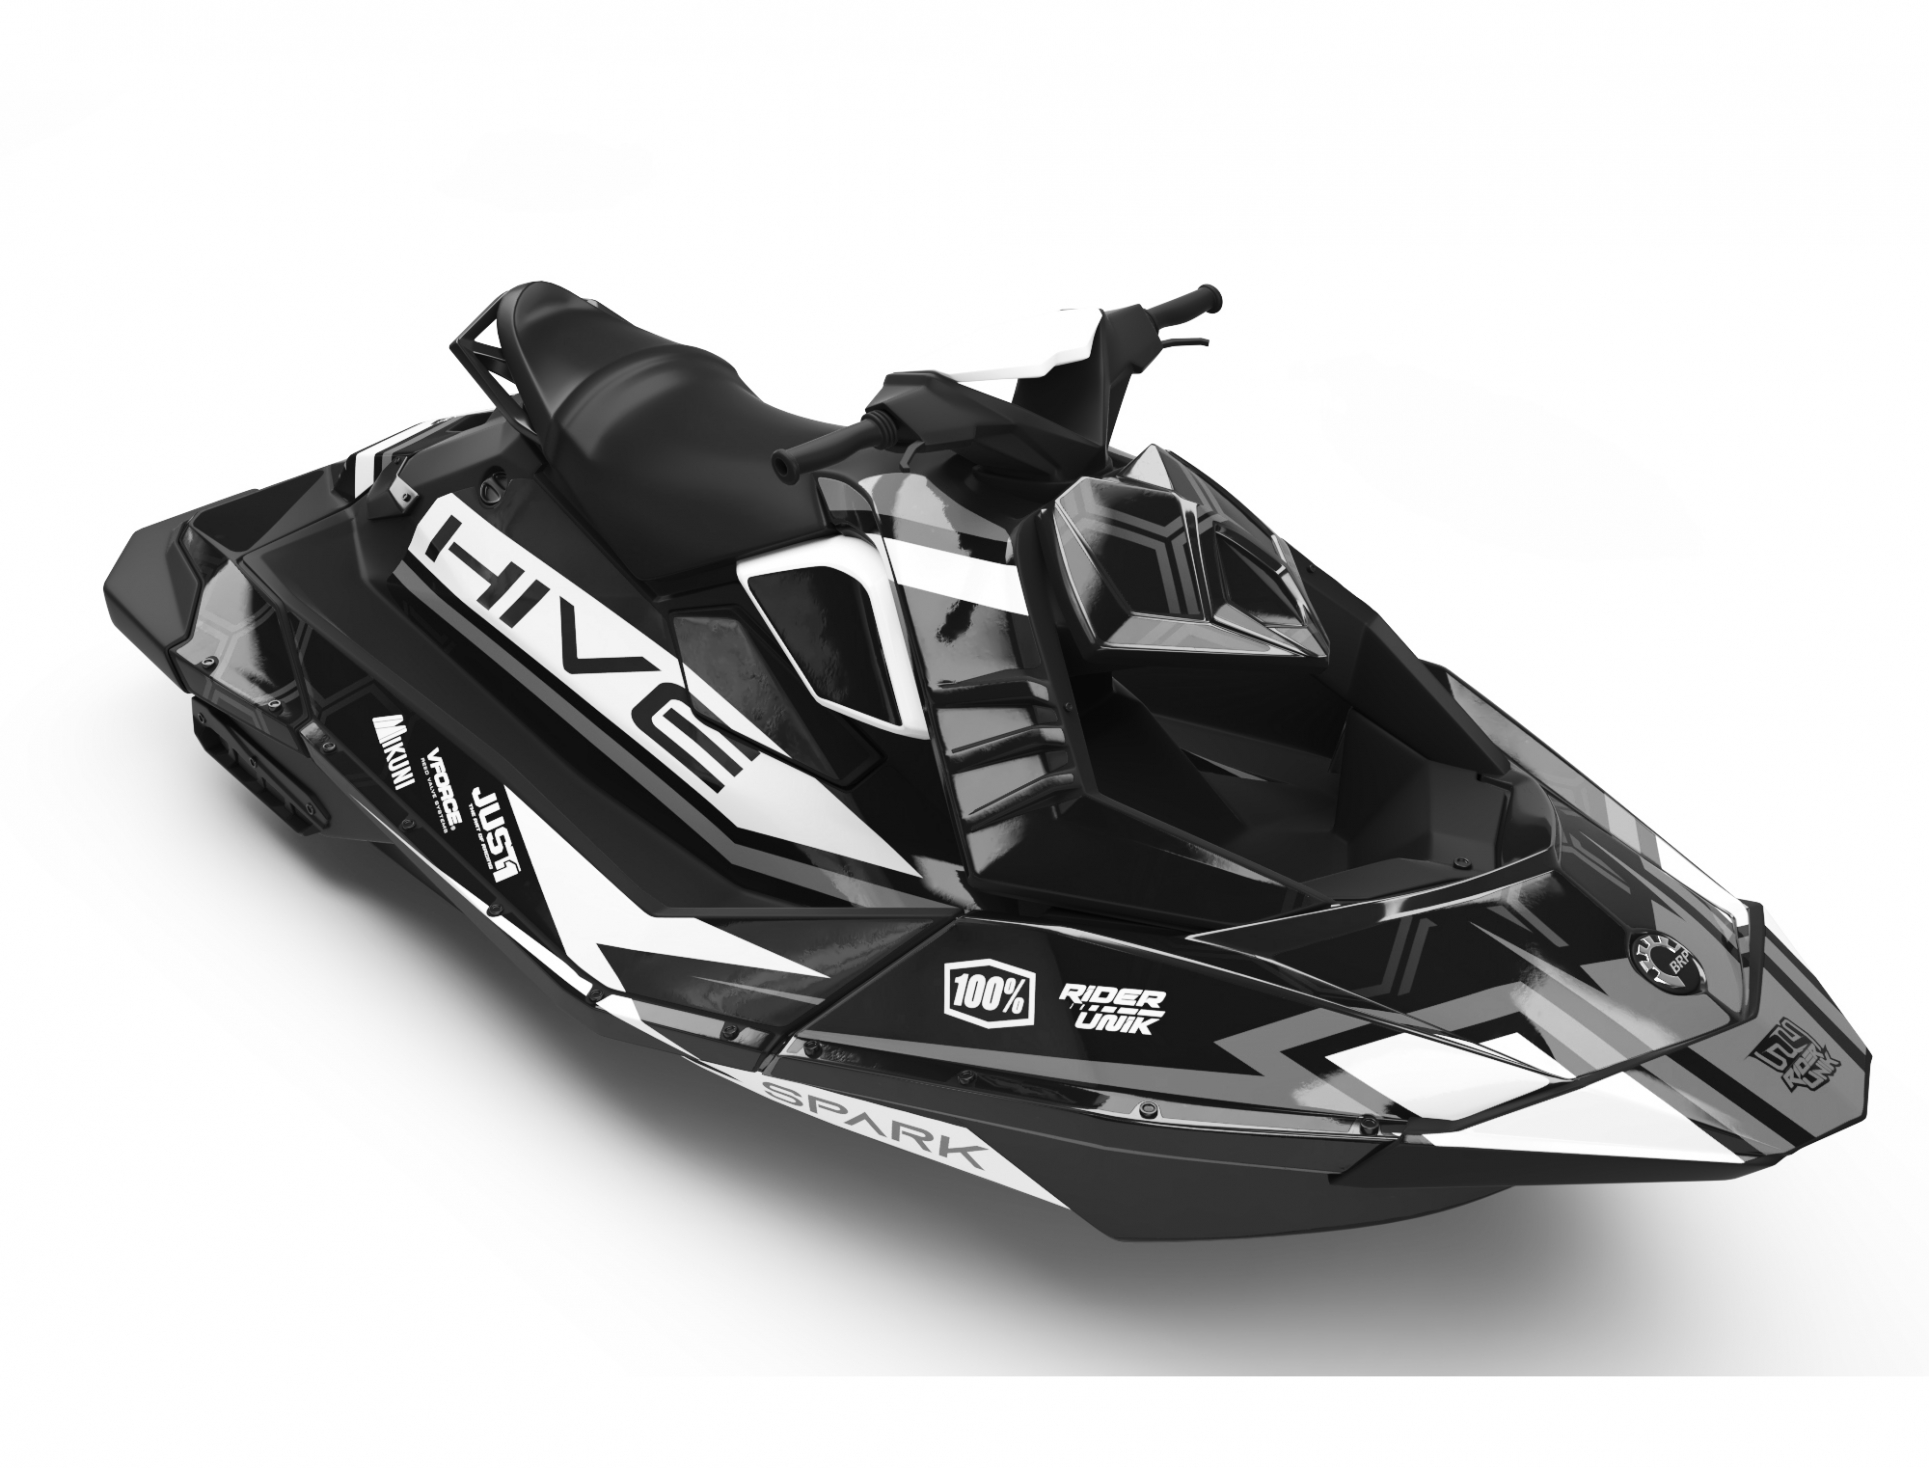 KIT DECO SEA-DOO SPARK HIVE GREY